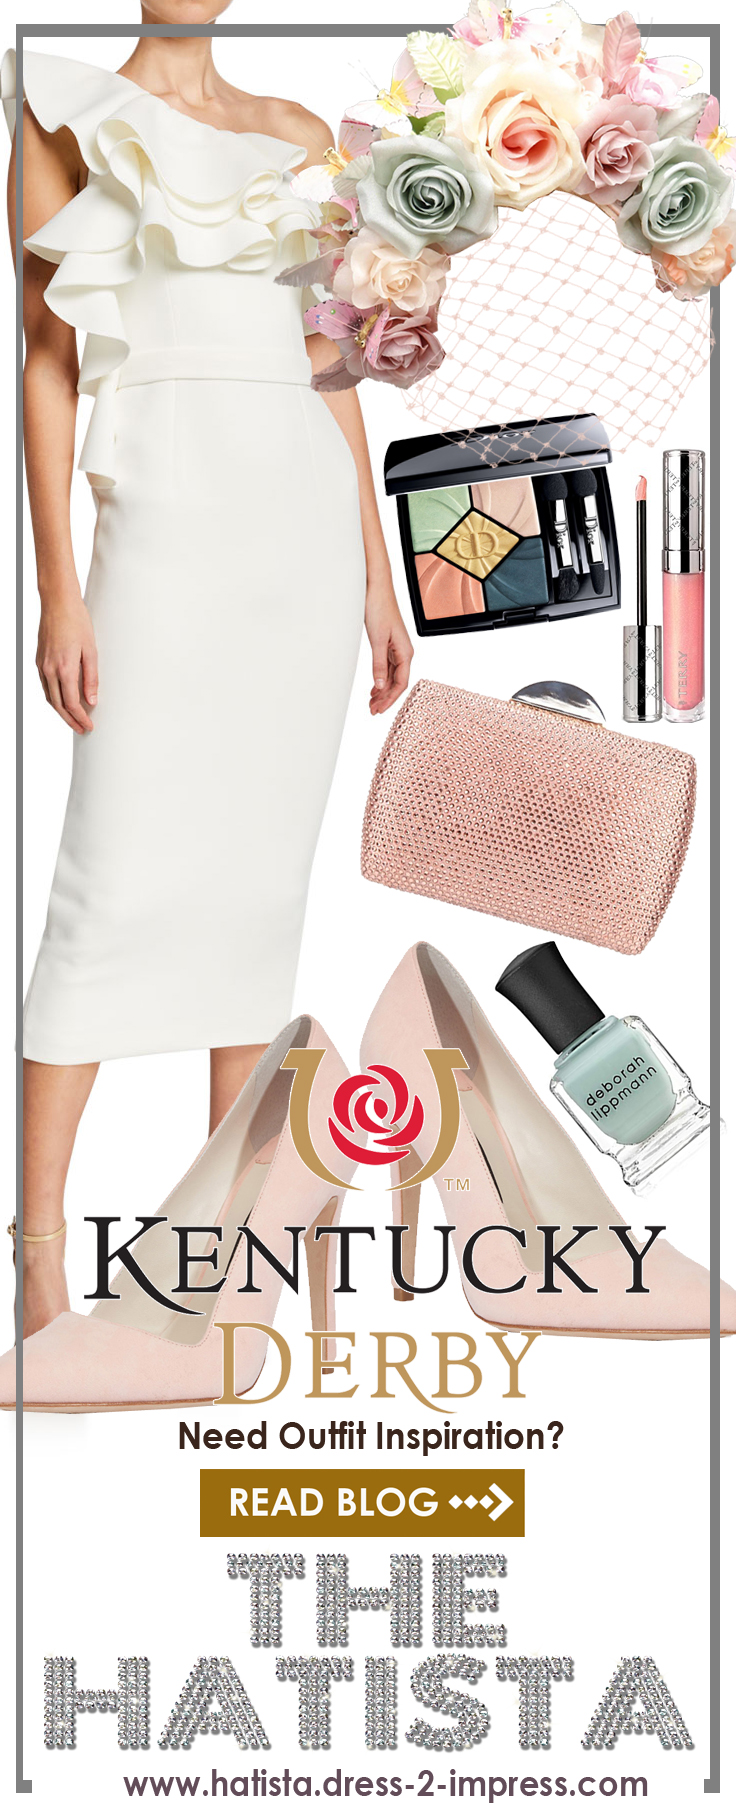 Kentucky Derby outfit ideas. What to wear for the Kentucky Derby. Kentucky Derby Fashion Guide. Kentucky Derby Attire. Kentucky Derby Dresses. Kentucky Derby Hats. #kentuckyderby